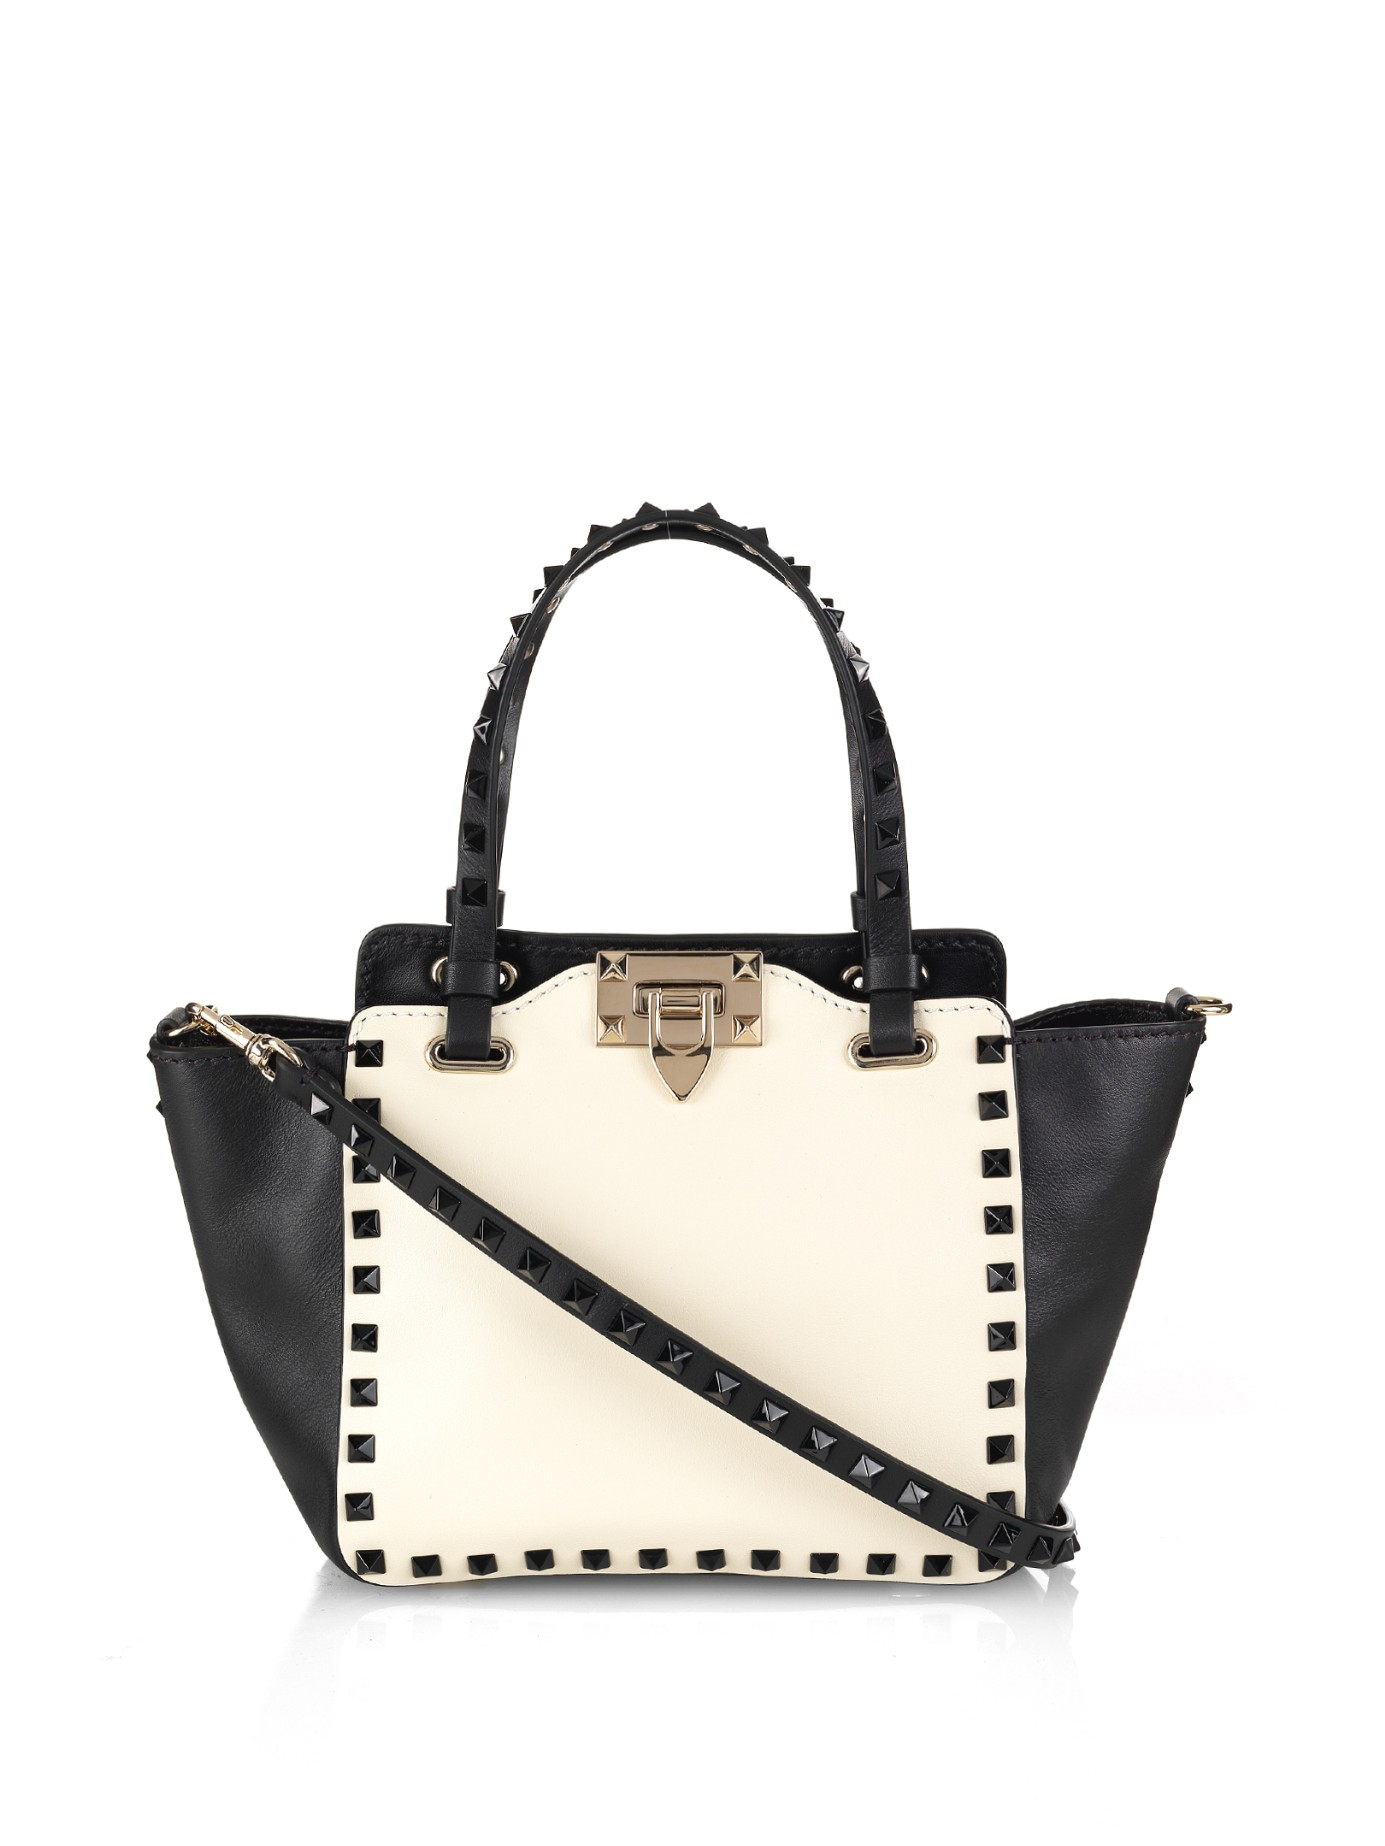 5d9195b54387 Gallery. Previously sold at  MATCHESFASHION.COM · Women s Valentino  Rockstud Bags ...